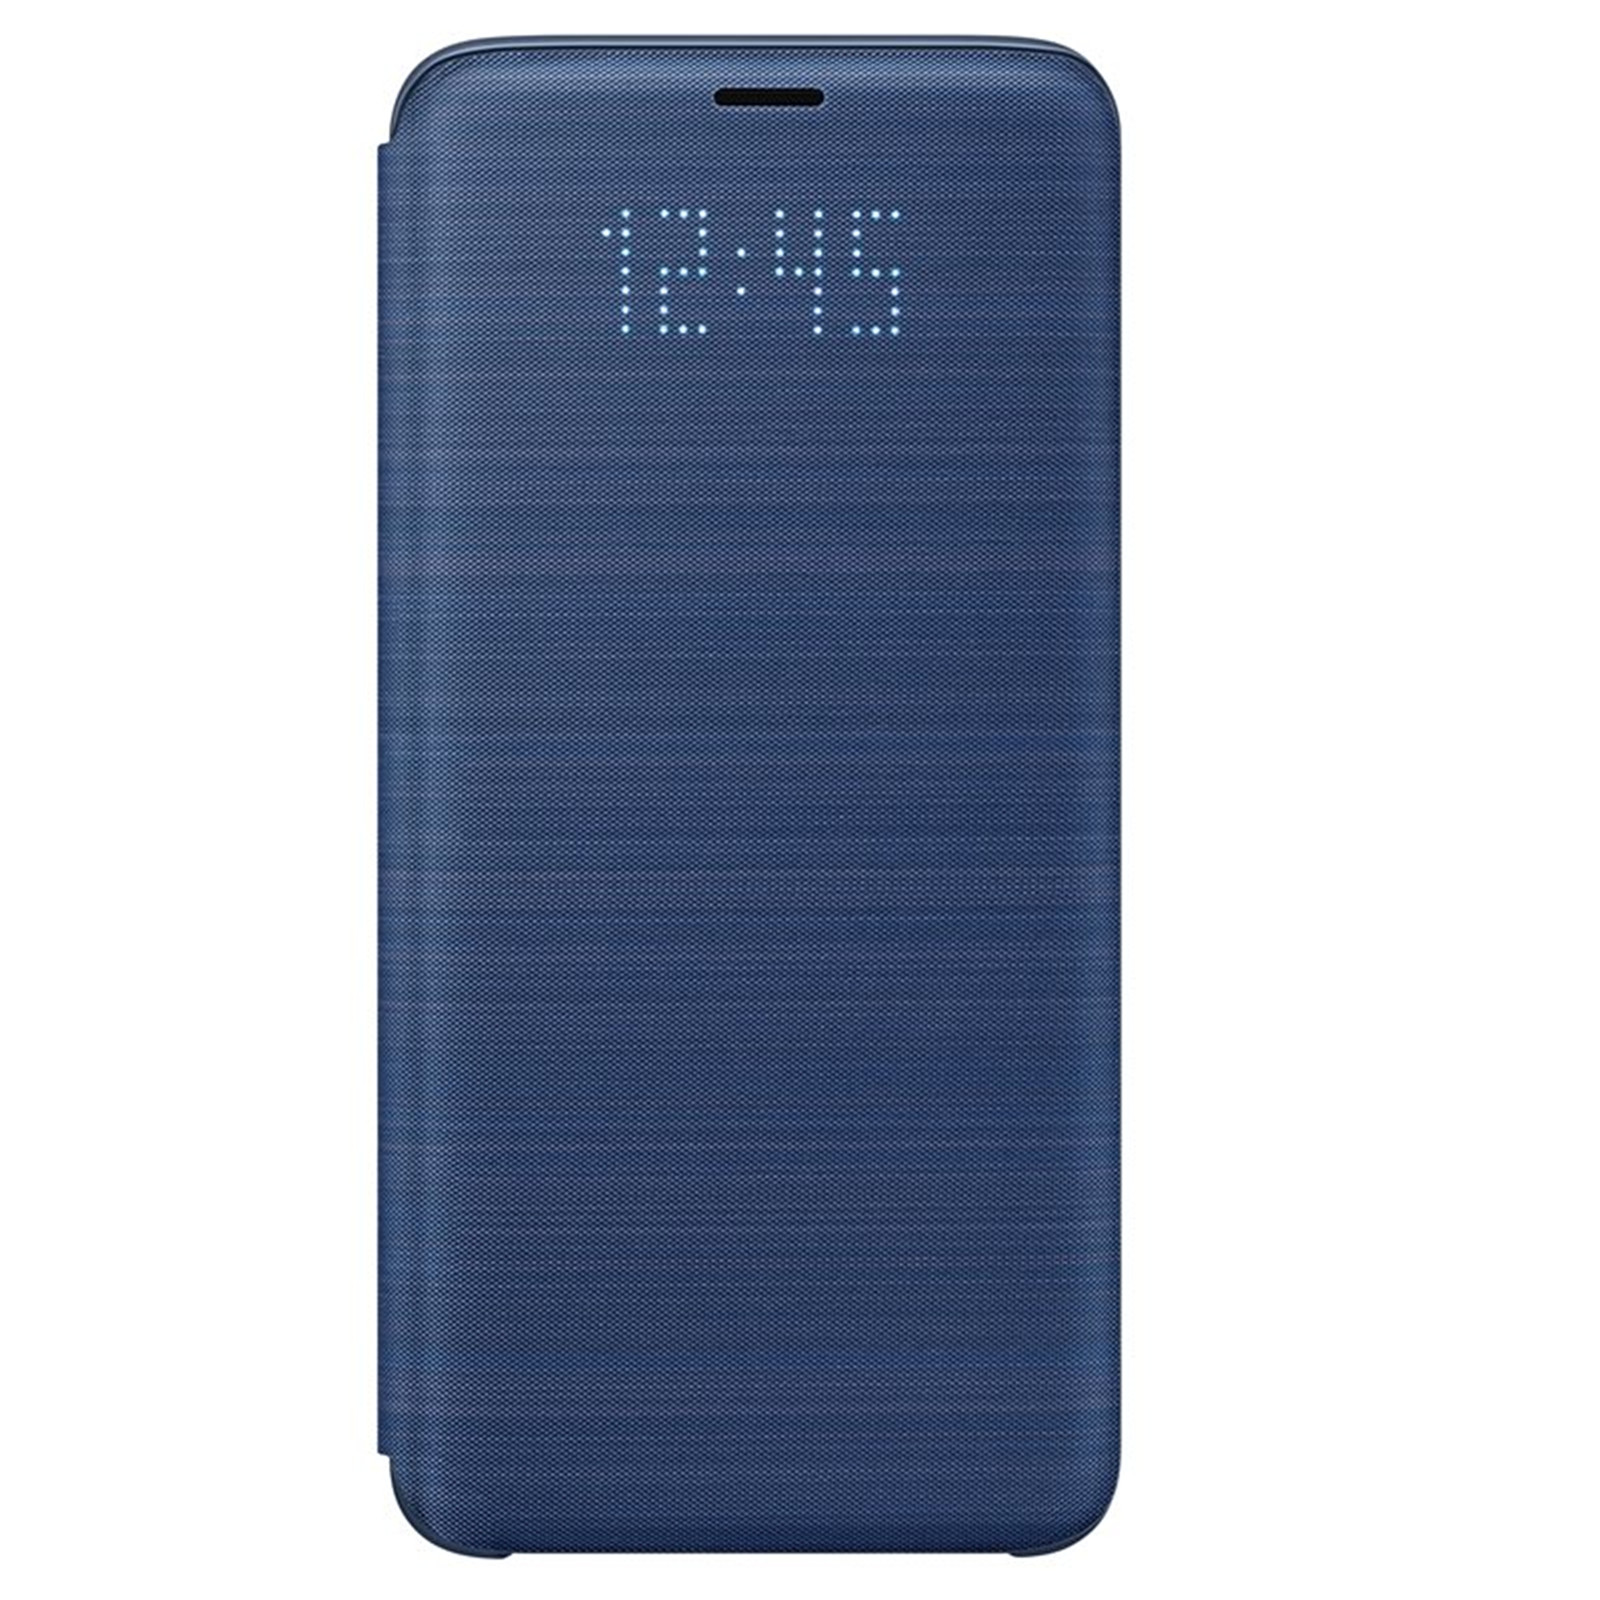 reputable site a718f 39eb9 Buy the Samsung Galaxy S9 LED View Flip Cover- Blue,Light Alerts,LED ...